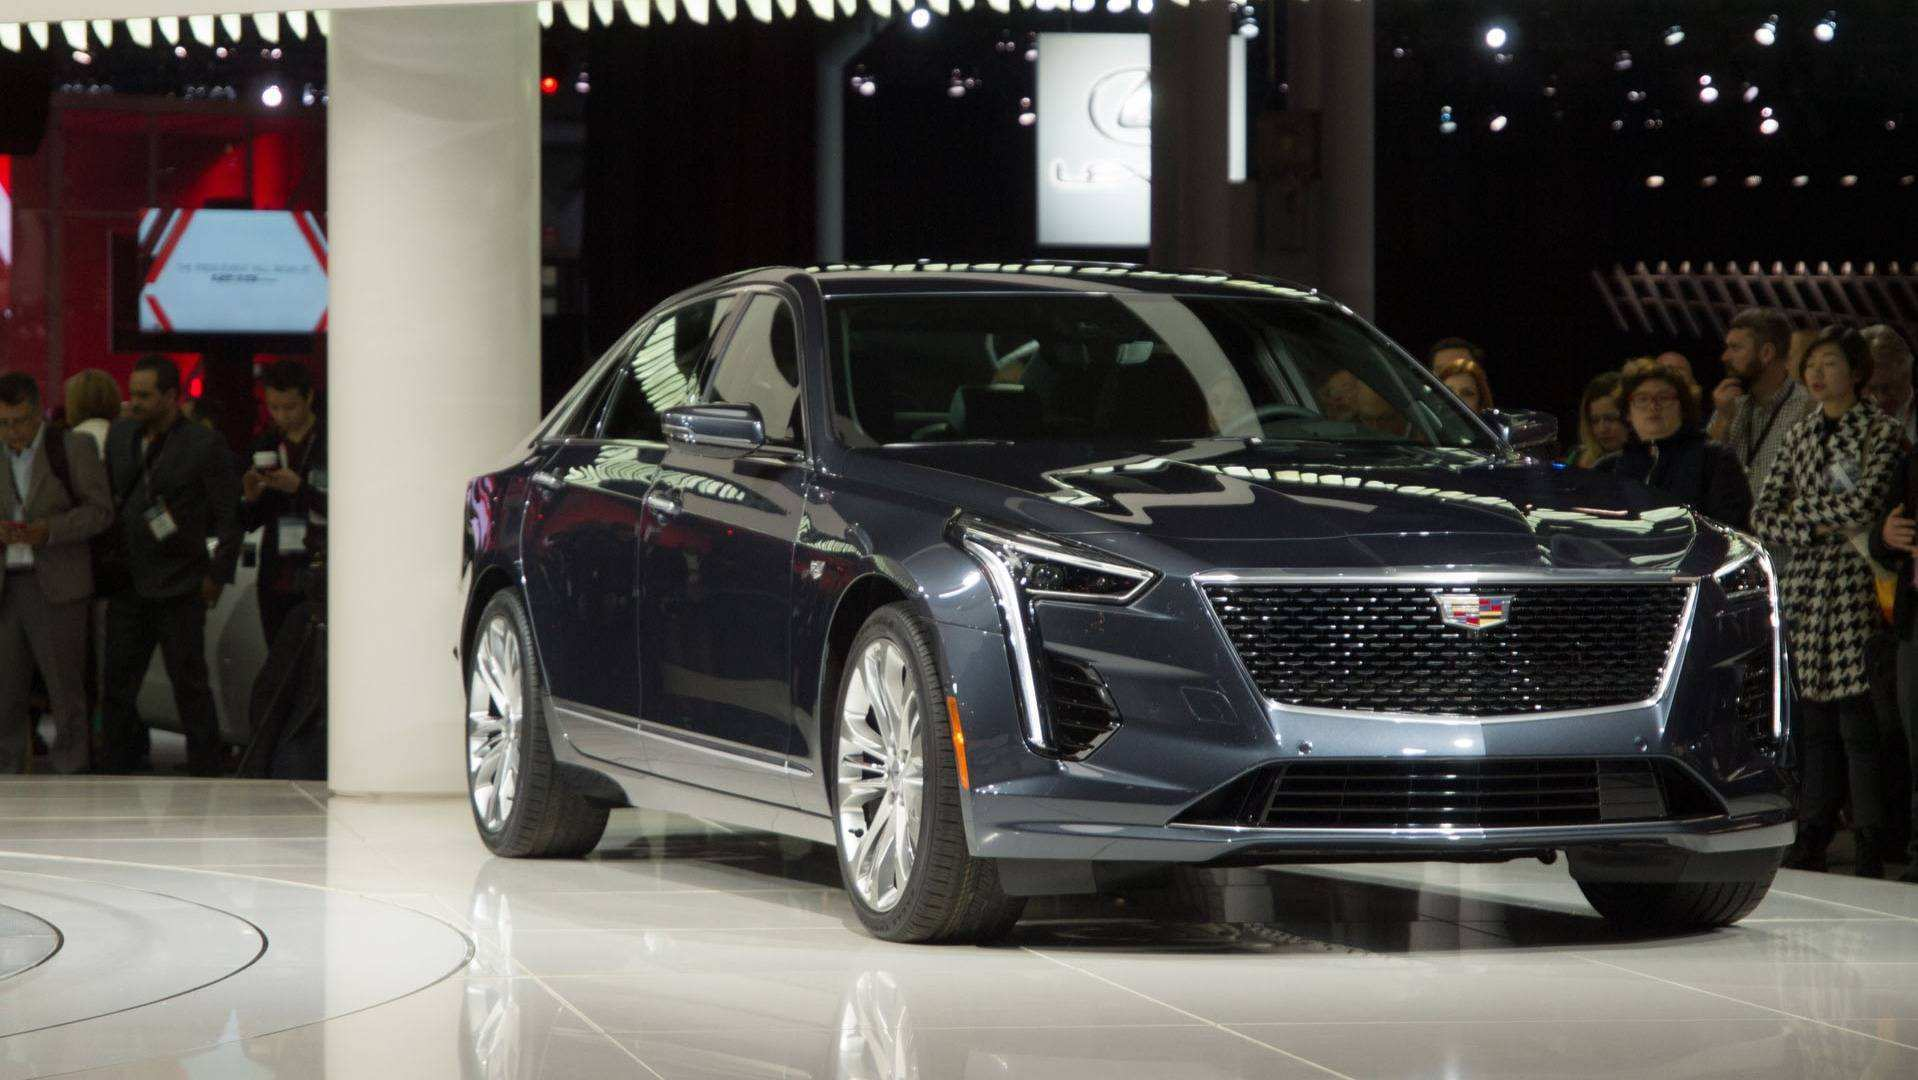 86 All New 2019 Cadillac Twin Turbo V8 Release Date And Concept